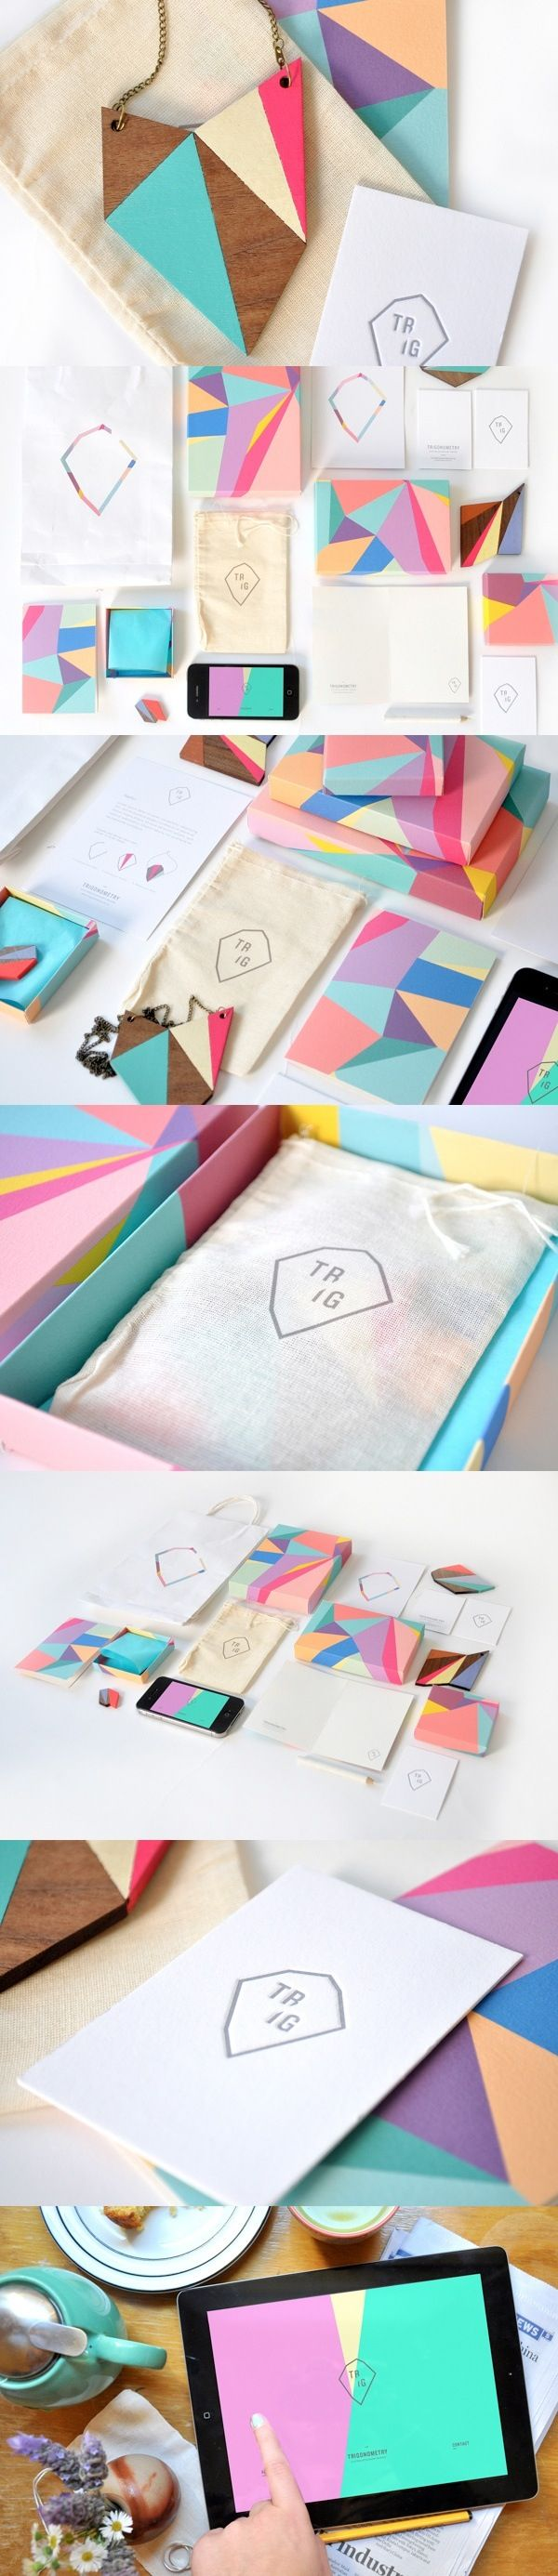 Trigonometry, a well considered design concept and branding by Sydney based designer and illustrator Olivia King